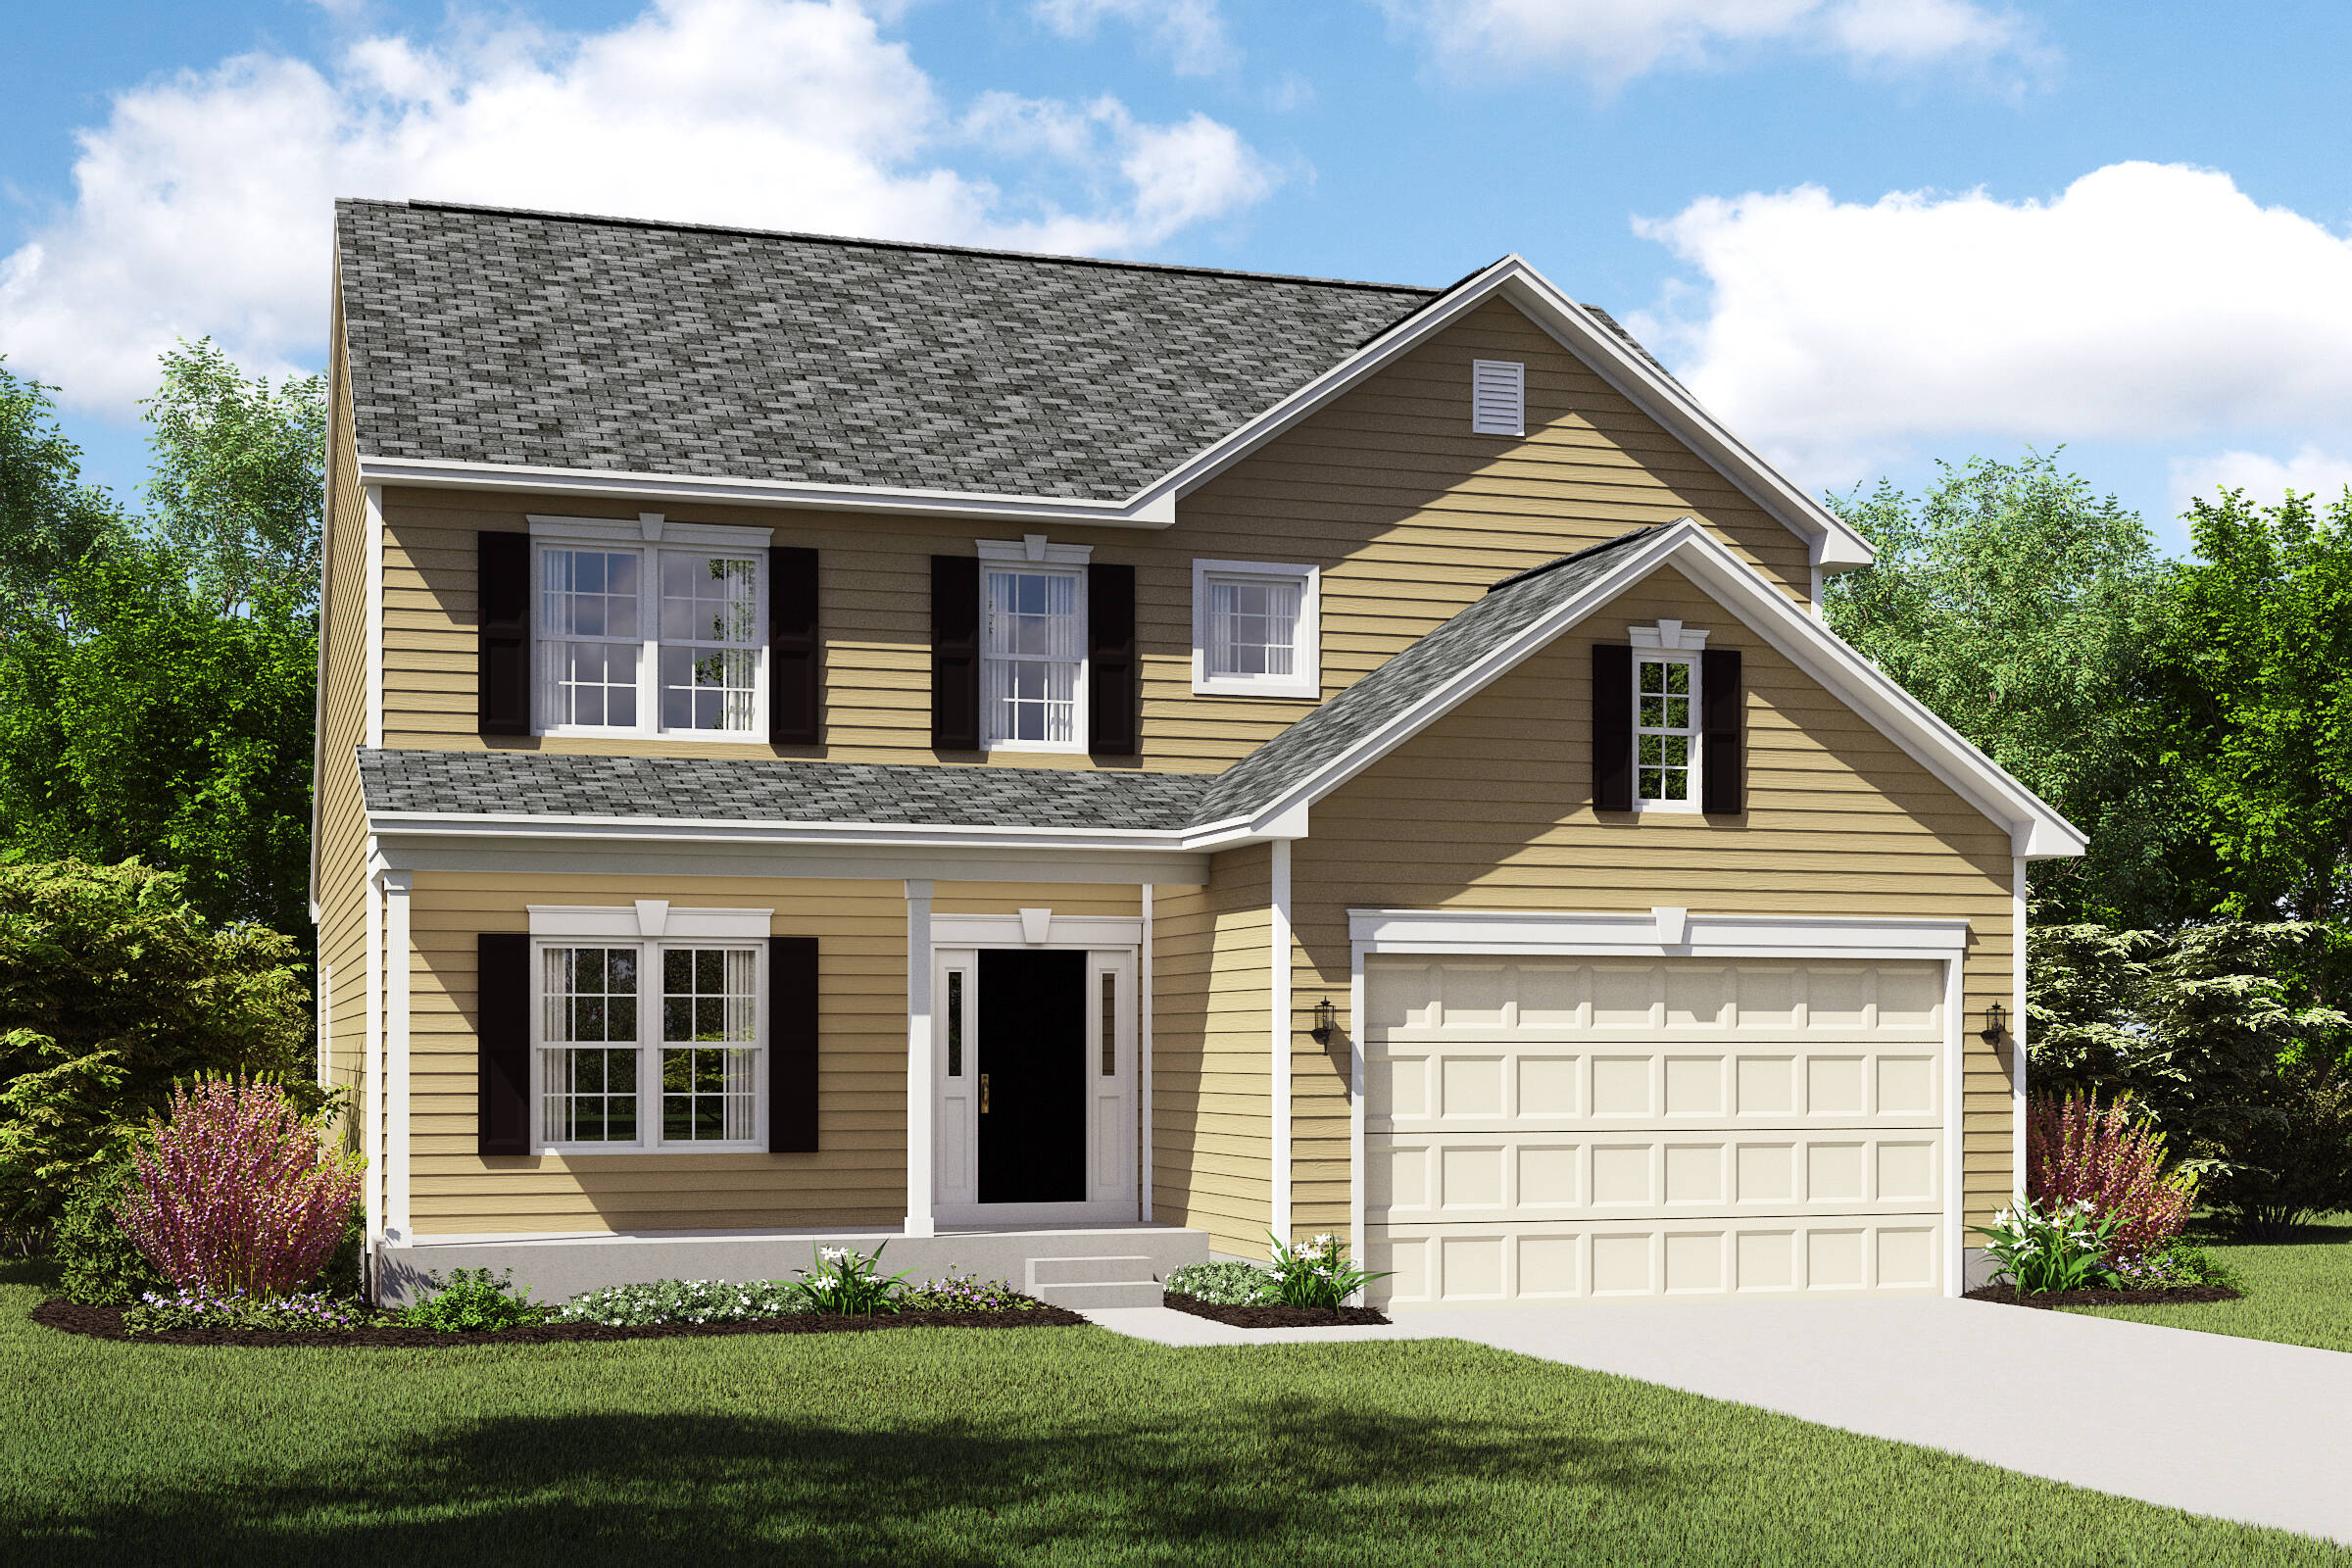 Oakridge-CS meadow lakes new homes k hovnanian homes